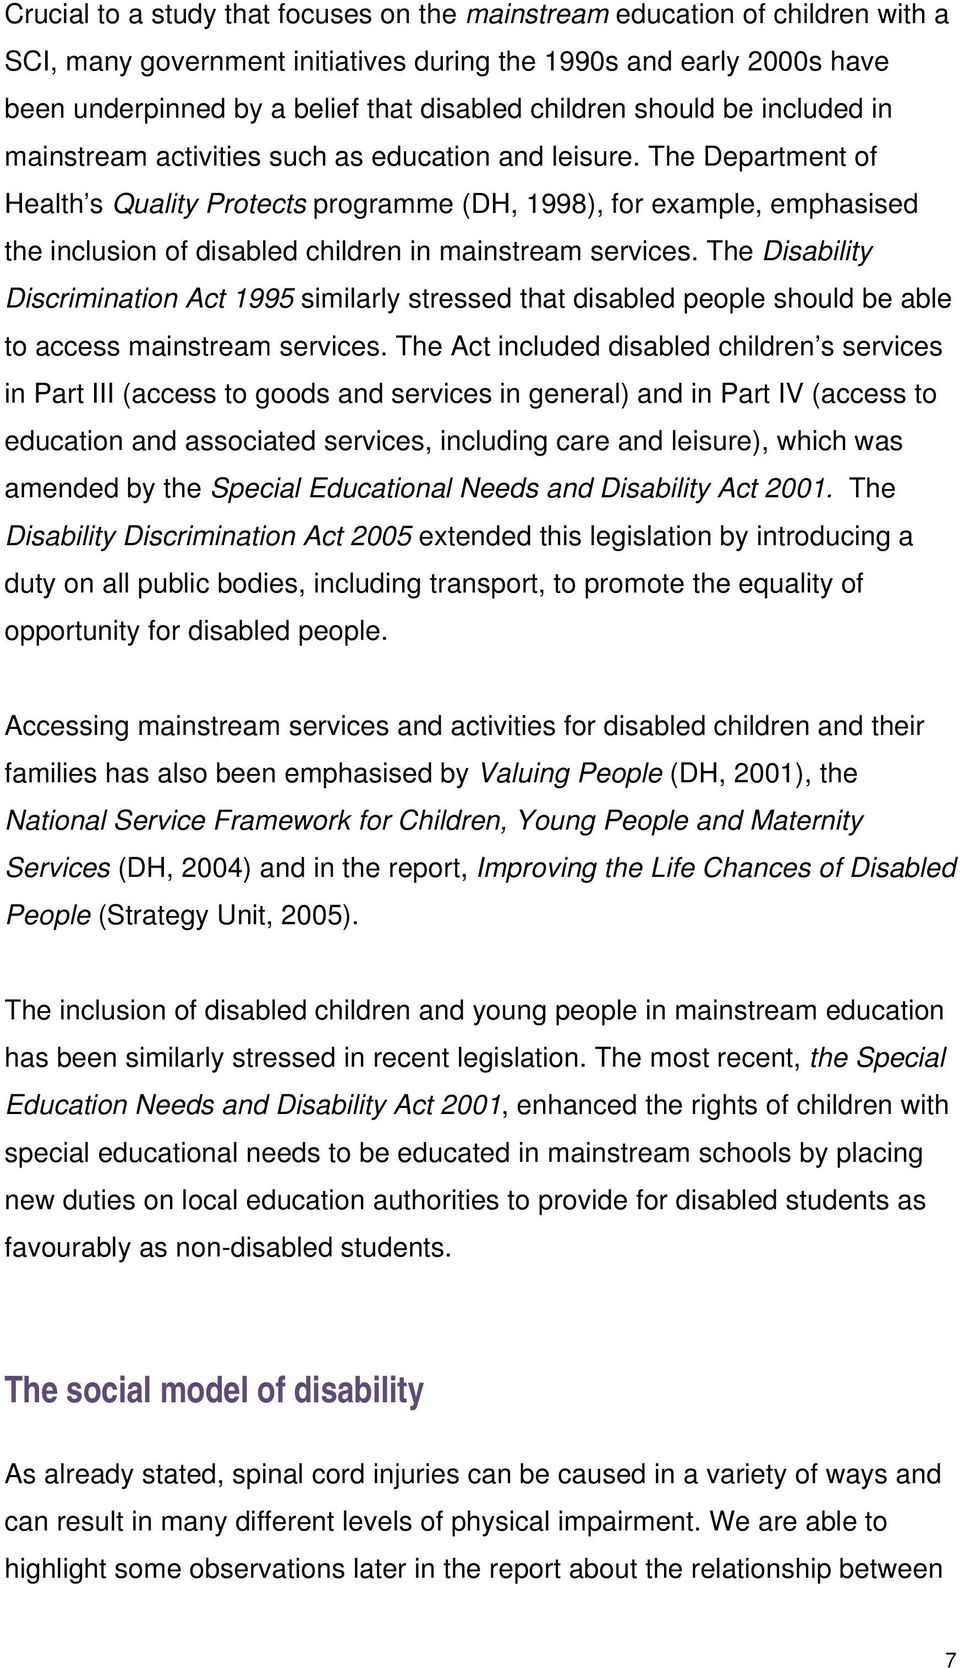 The Department of Health s Quality Protects programme (DH, 1998), for example, emphasised the inclusion of disabled children in mainstream services.